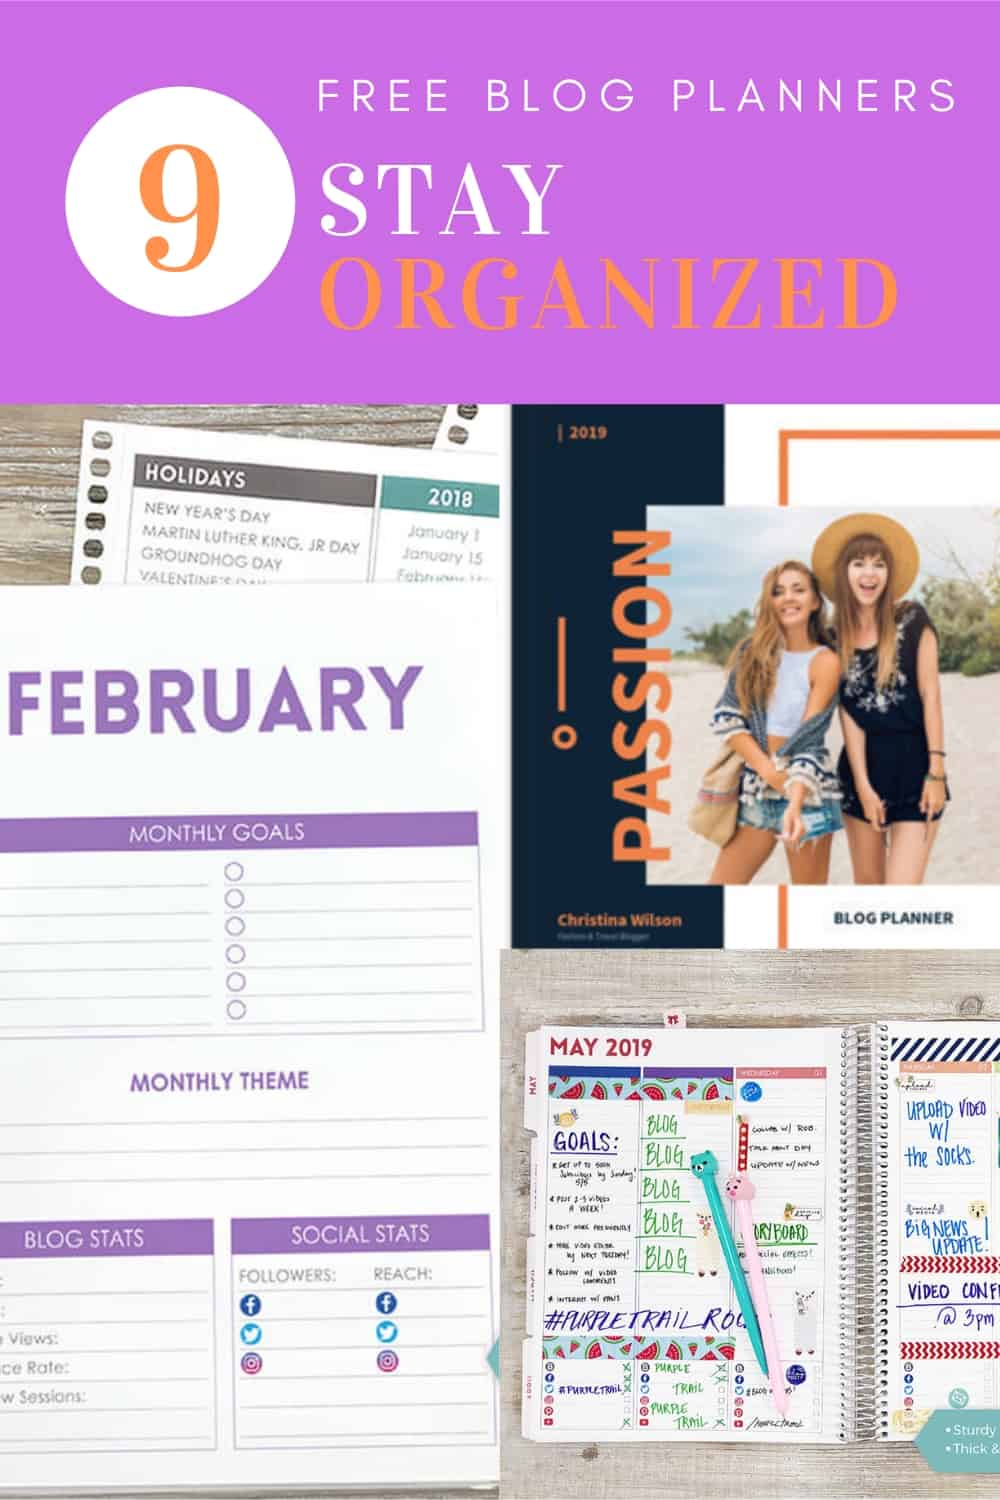 Get organized with these awesome blogging planners